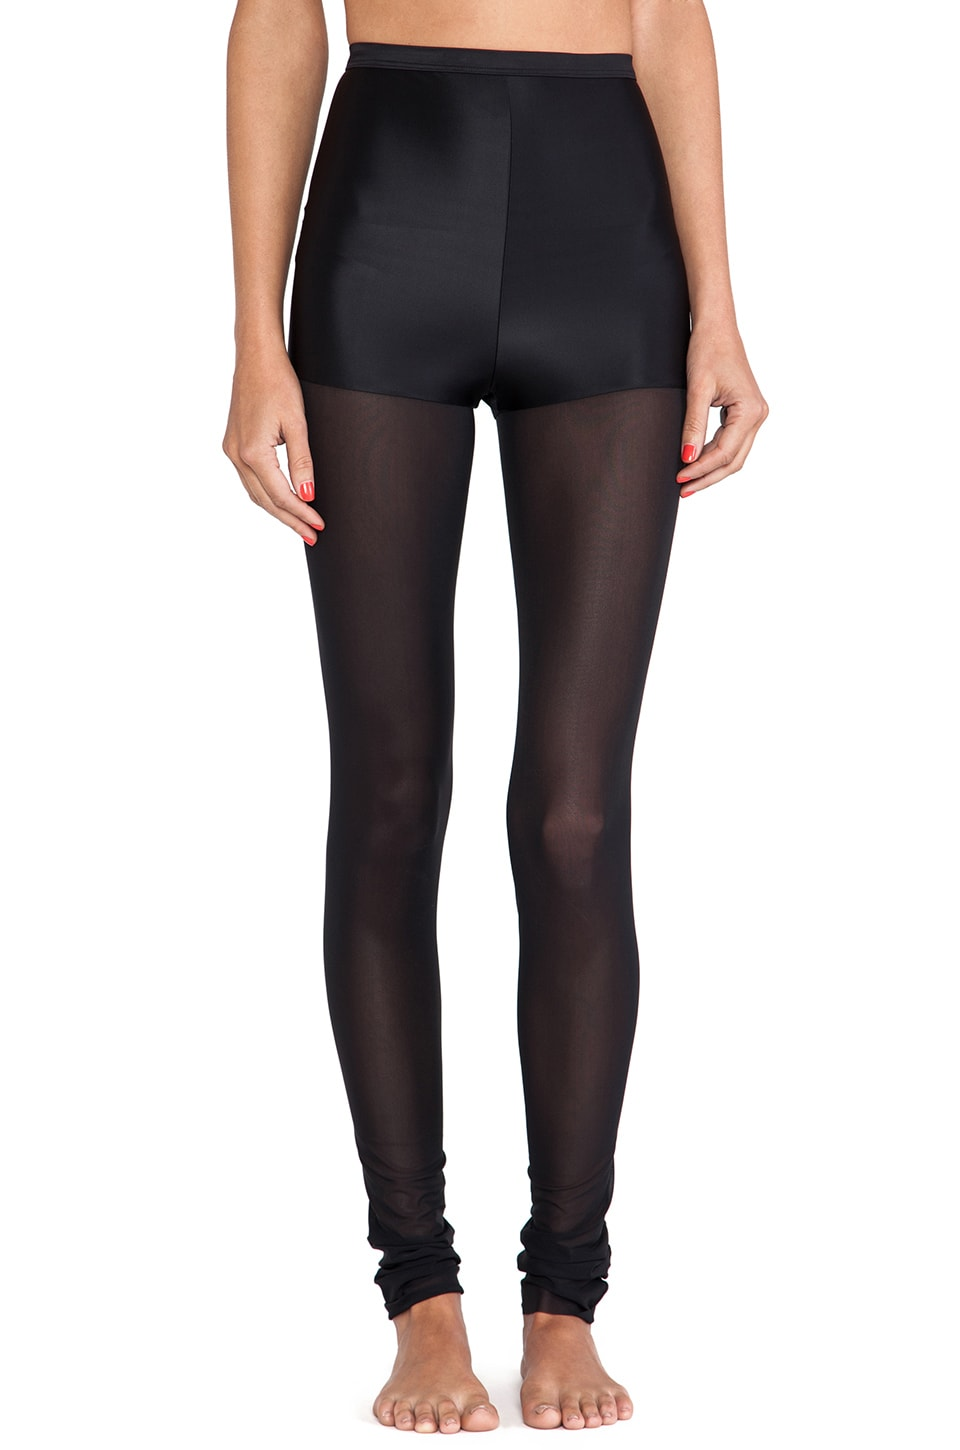 NOE Undergarments Edward Legging in Black